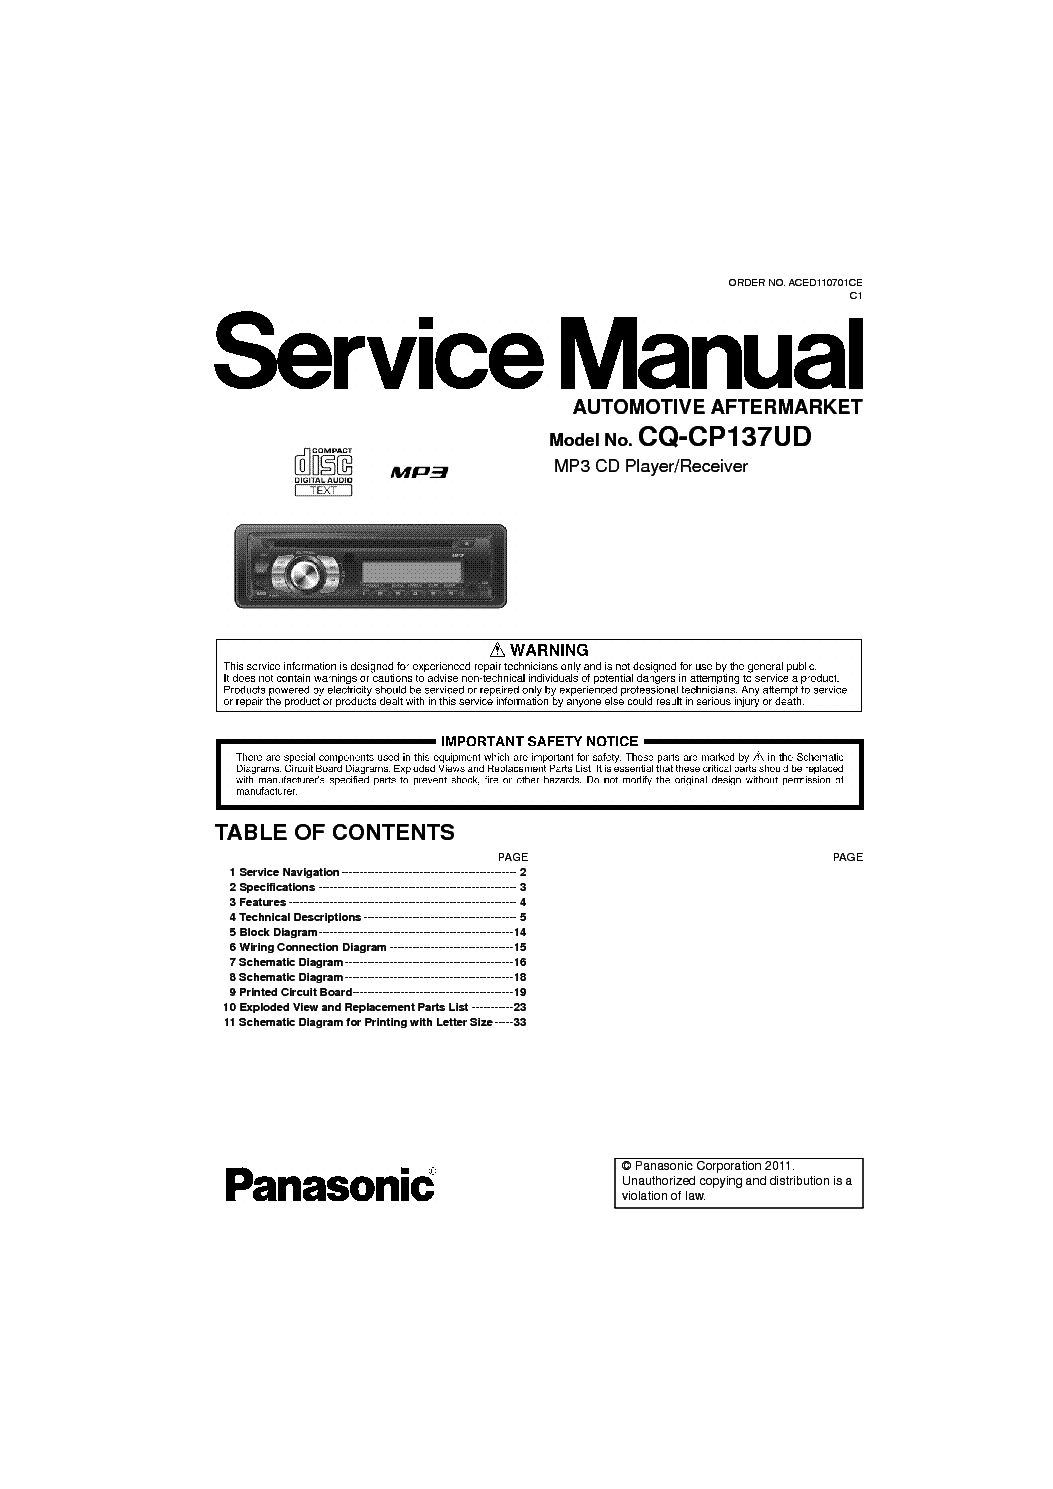 panasonic heat pump wiring diagram panasonic image panasonic wiring harness solidfonts on panasonic heat pump wiring diagram